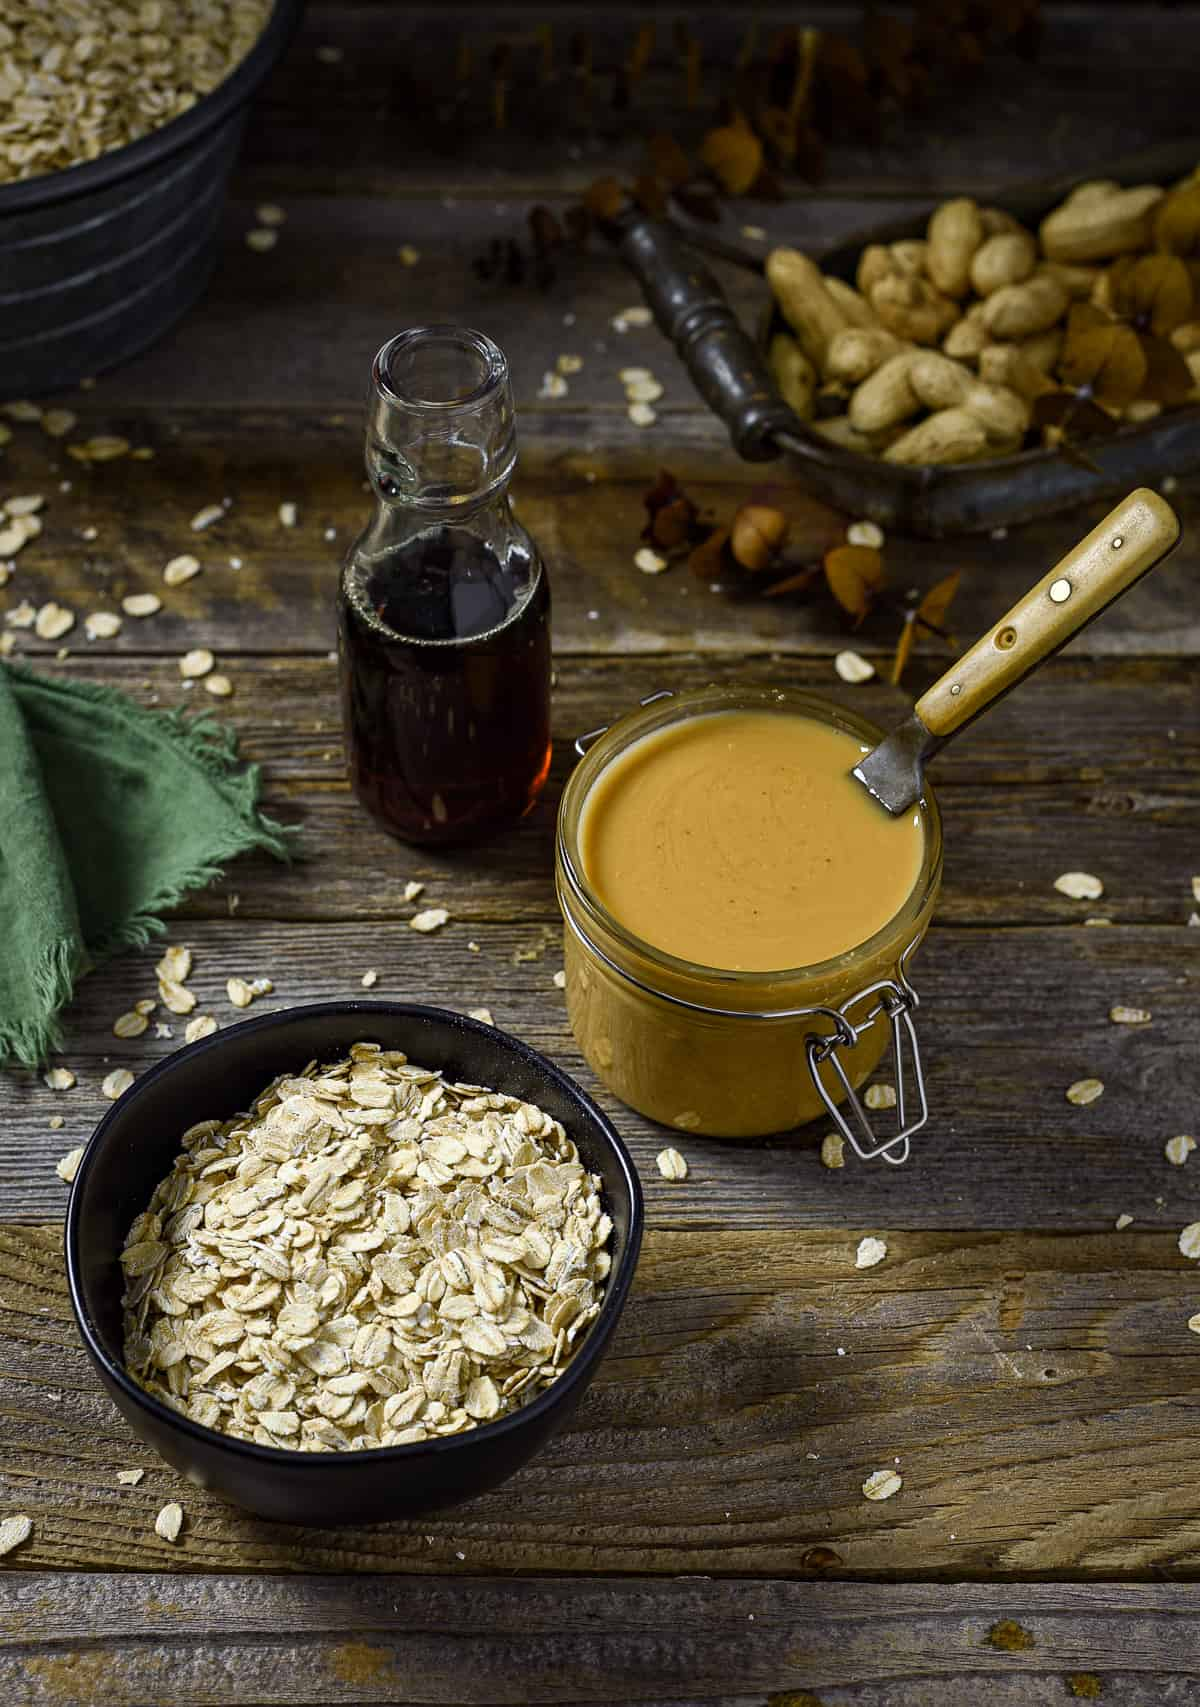 Oats, peanut butter, and maple syrup on table.